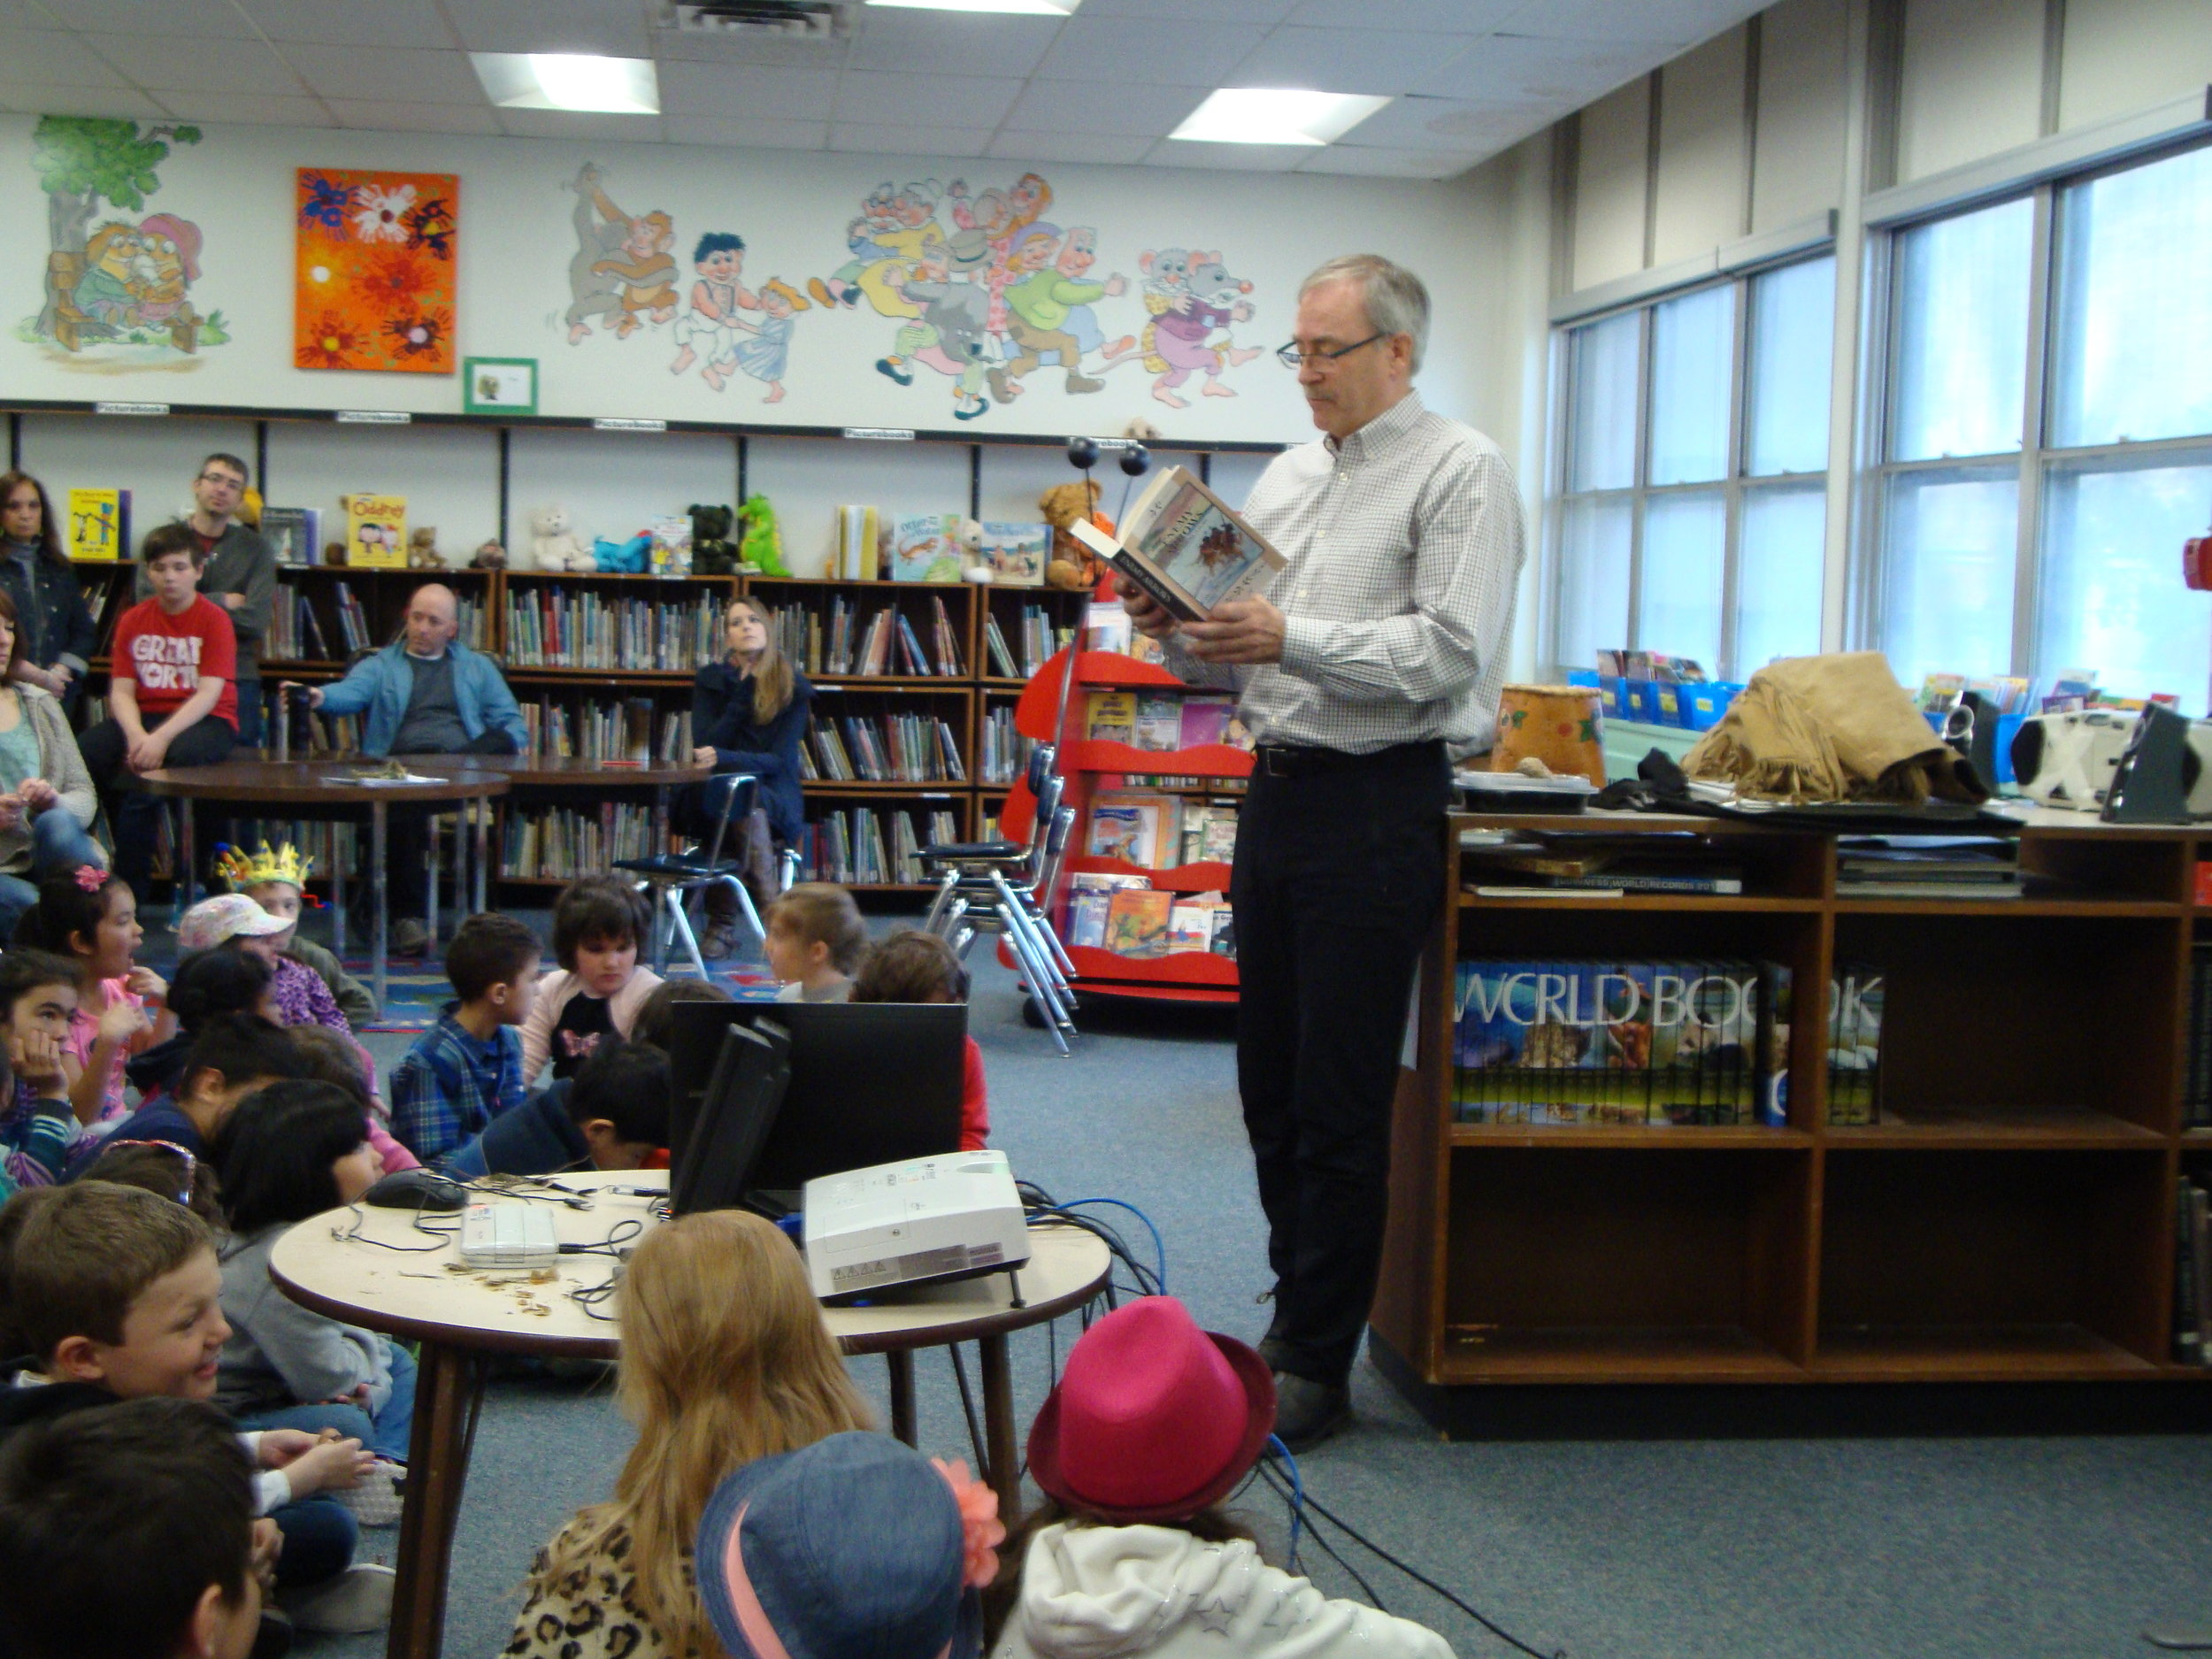 Author Will O'Hara visits a classroom to present his book Enemy Arrows